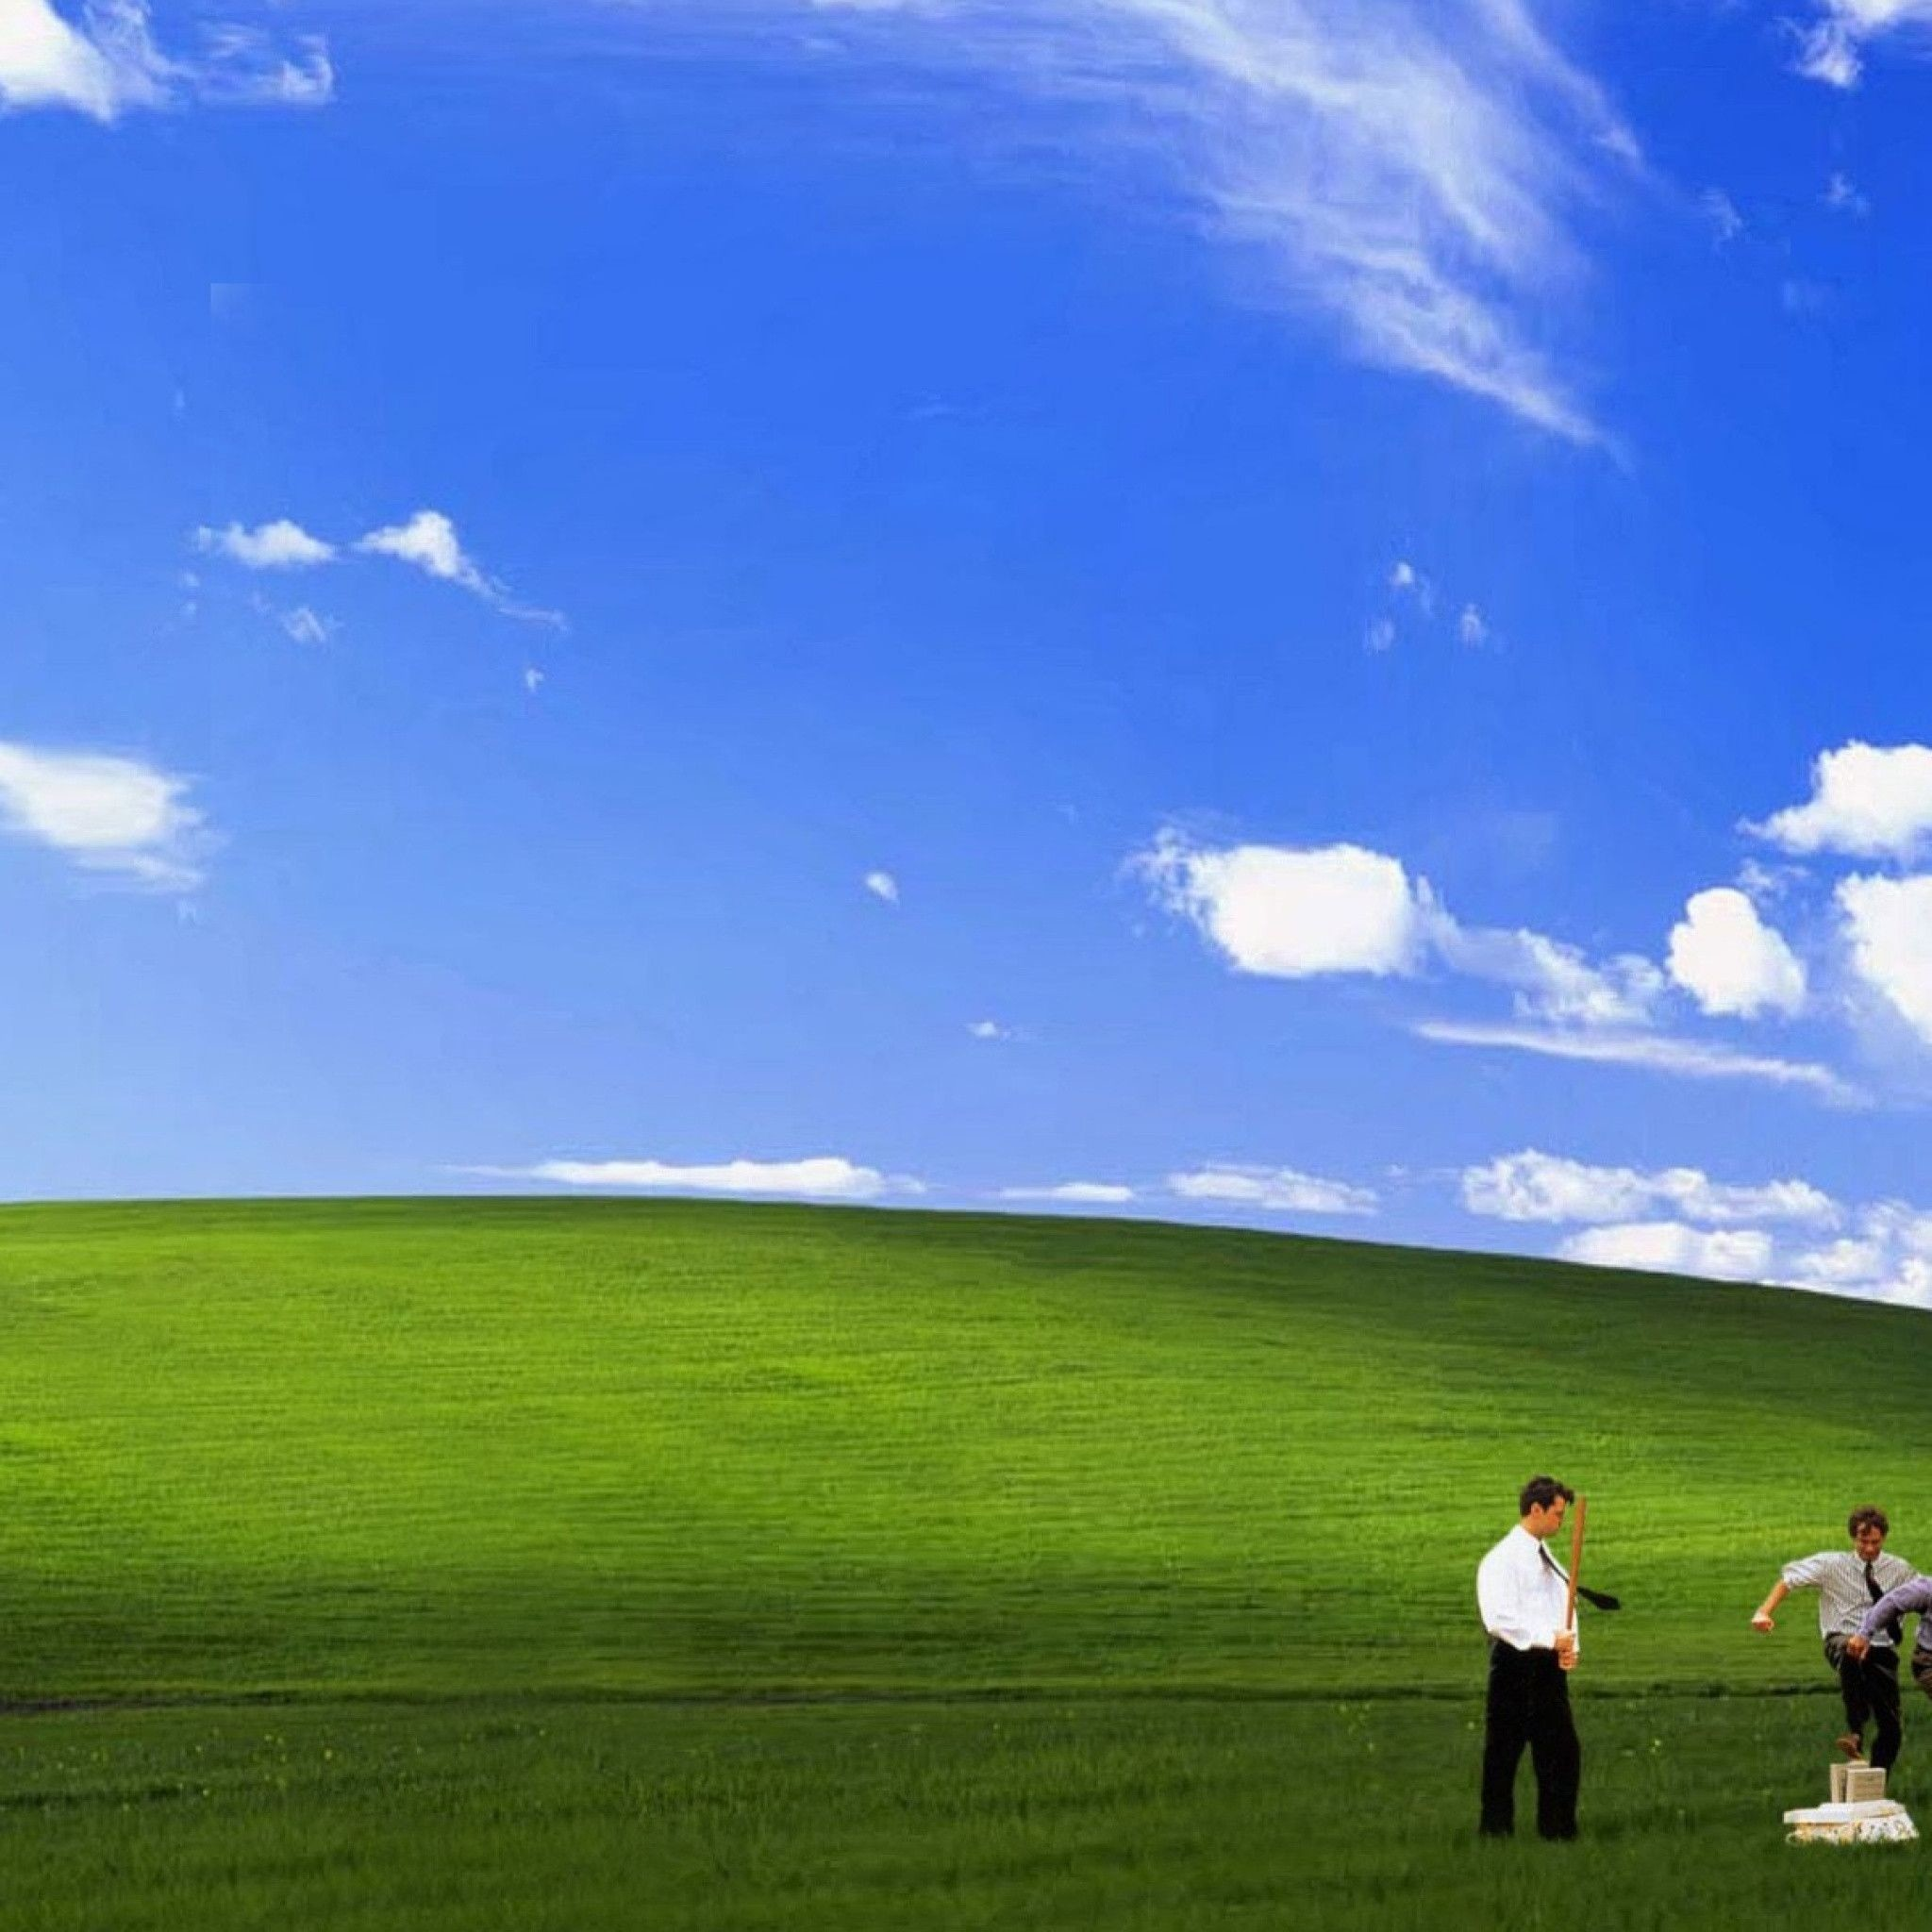 Desktop Wallpaper Vista: Windows XP HD Wallpaper ·① WallpaperTag